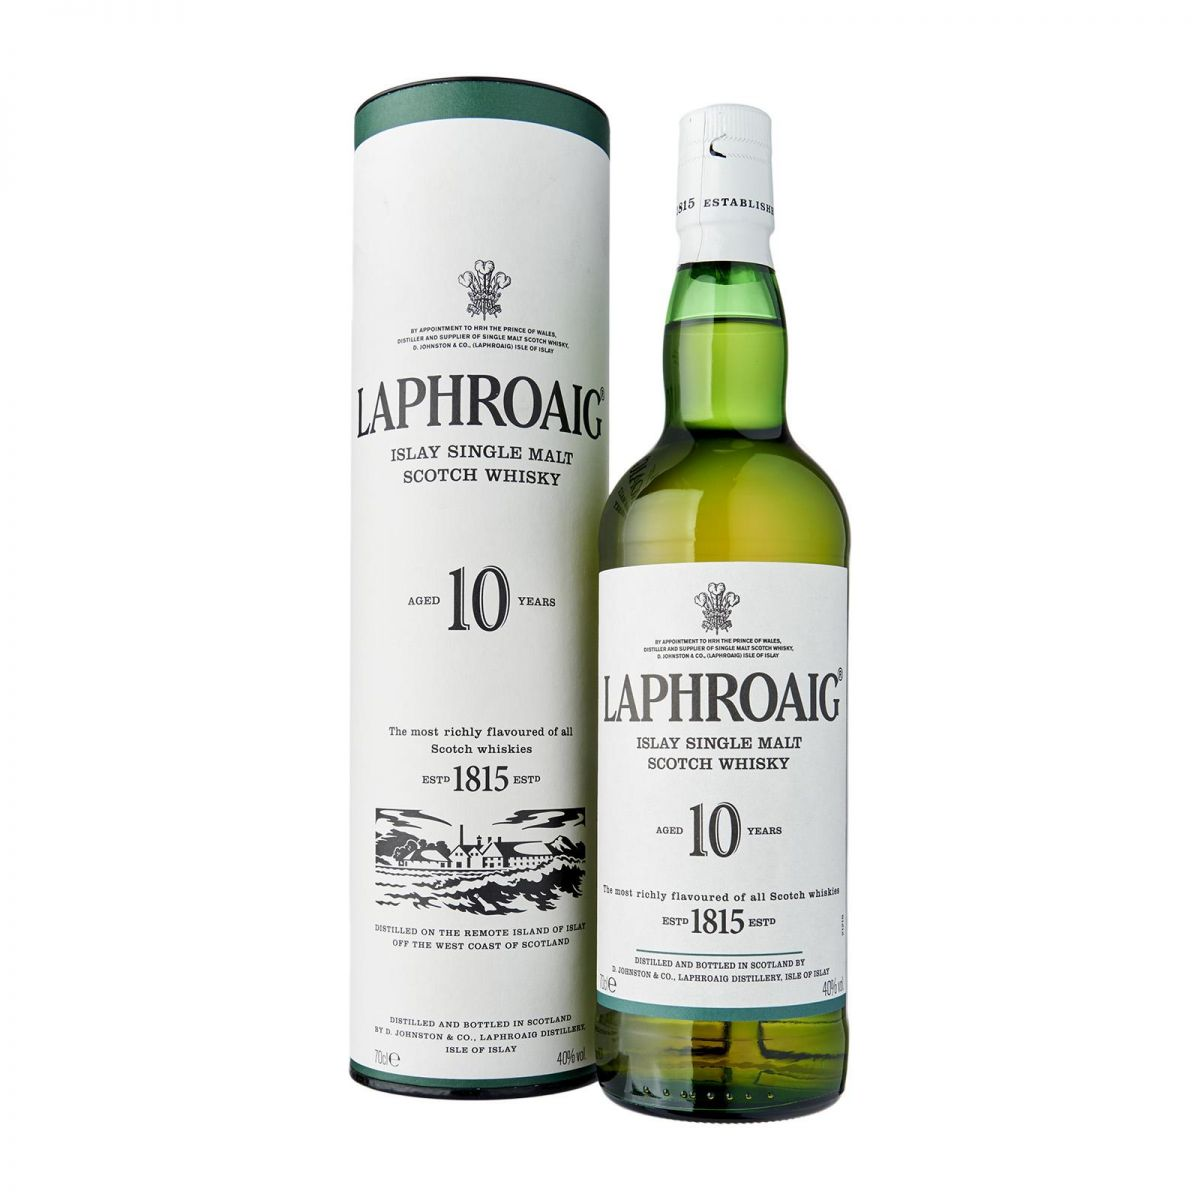 WHISKY LAPHROAIG SINGLE MALT 10 ANOS 750 ML